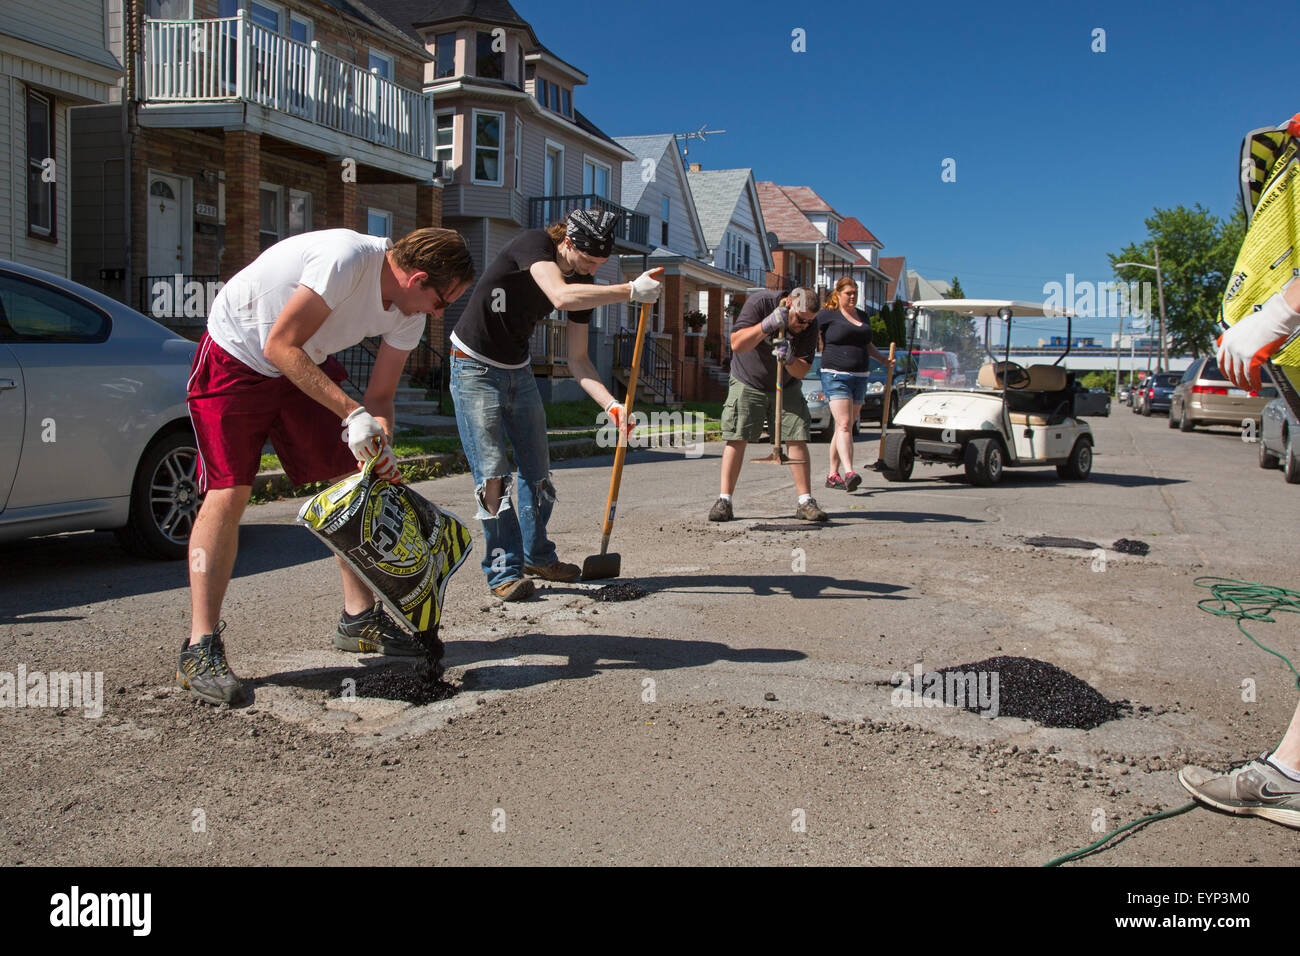 Hamtramck, Michigan - Members of the Hamtramck Guerrilla Road Repair crew fill potholes on the city's streets. - Stock Image